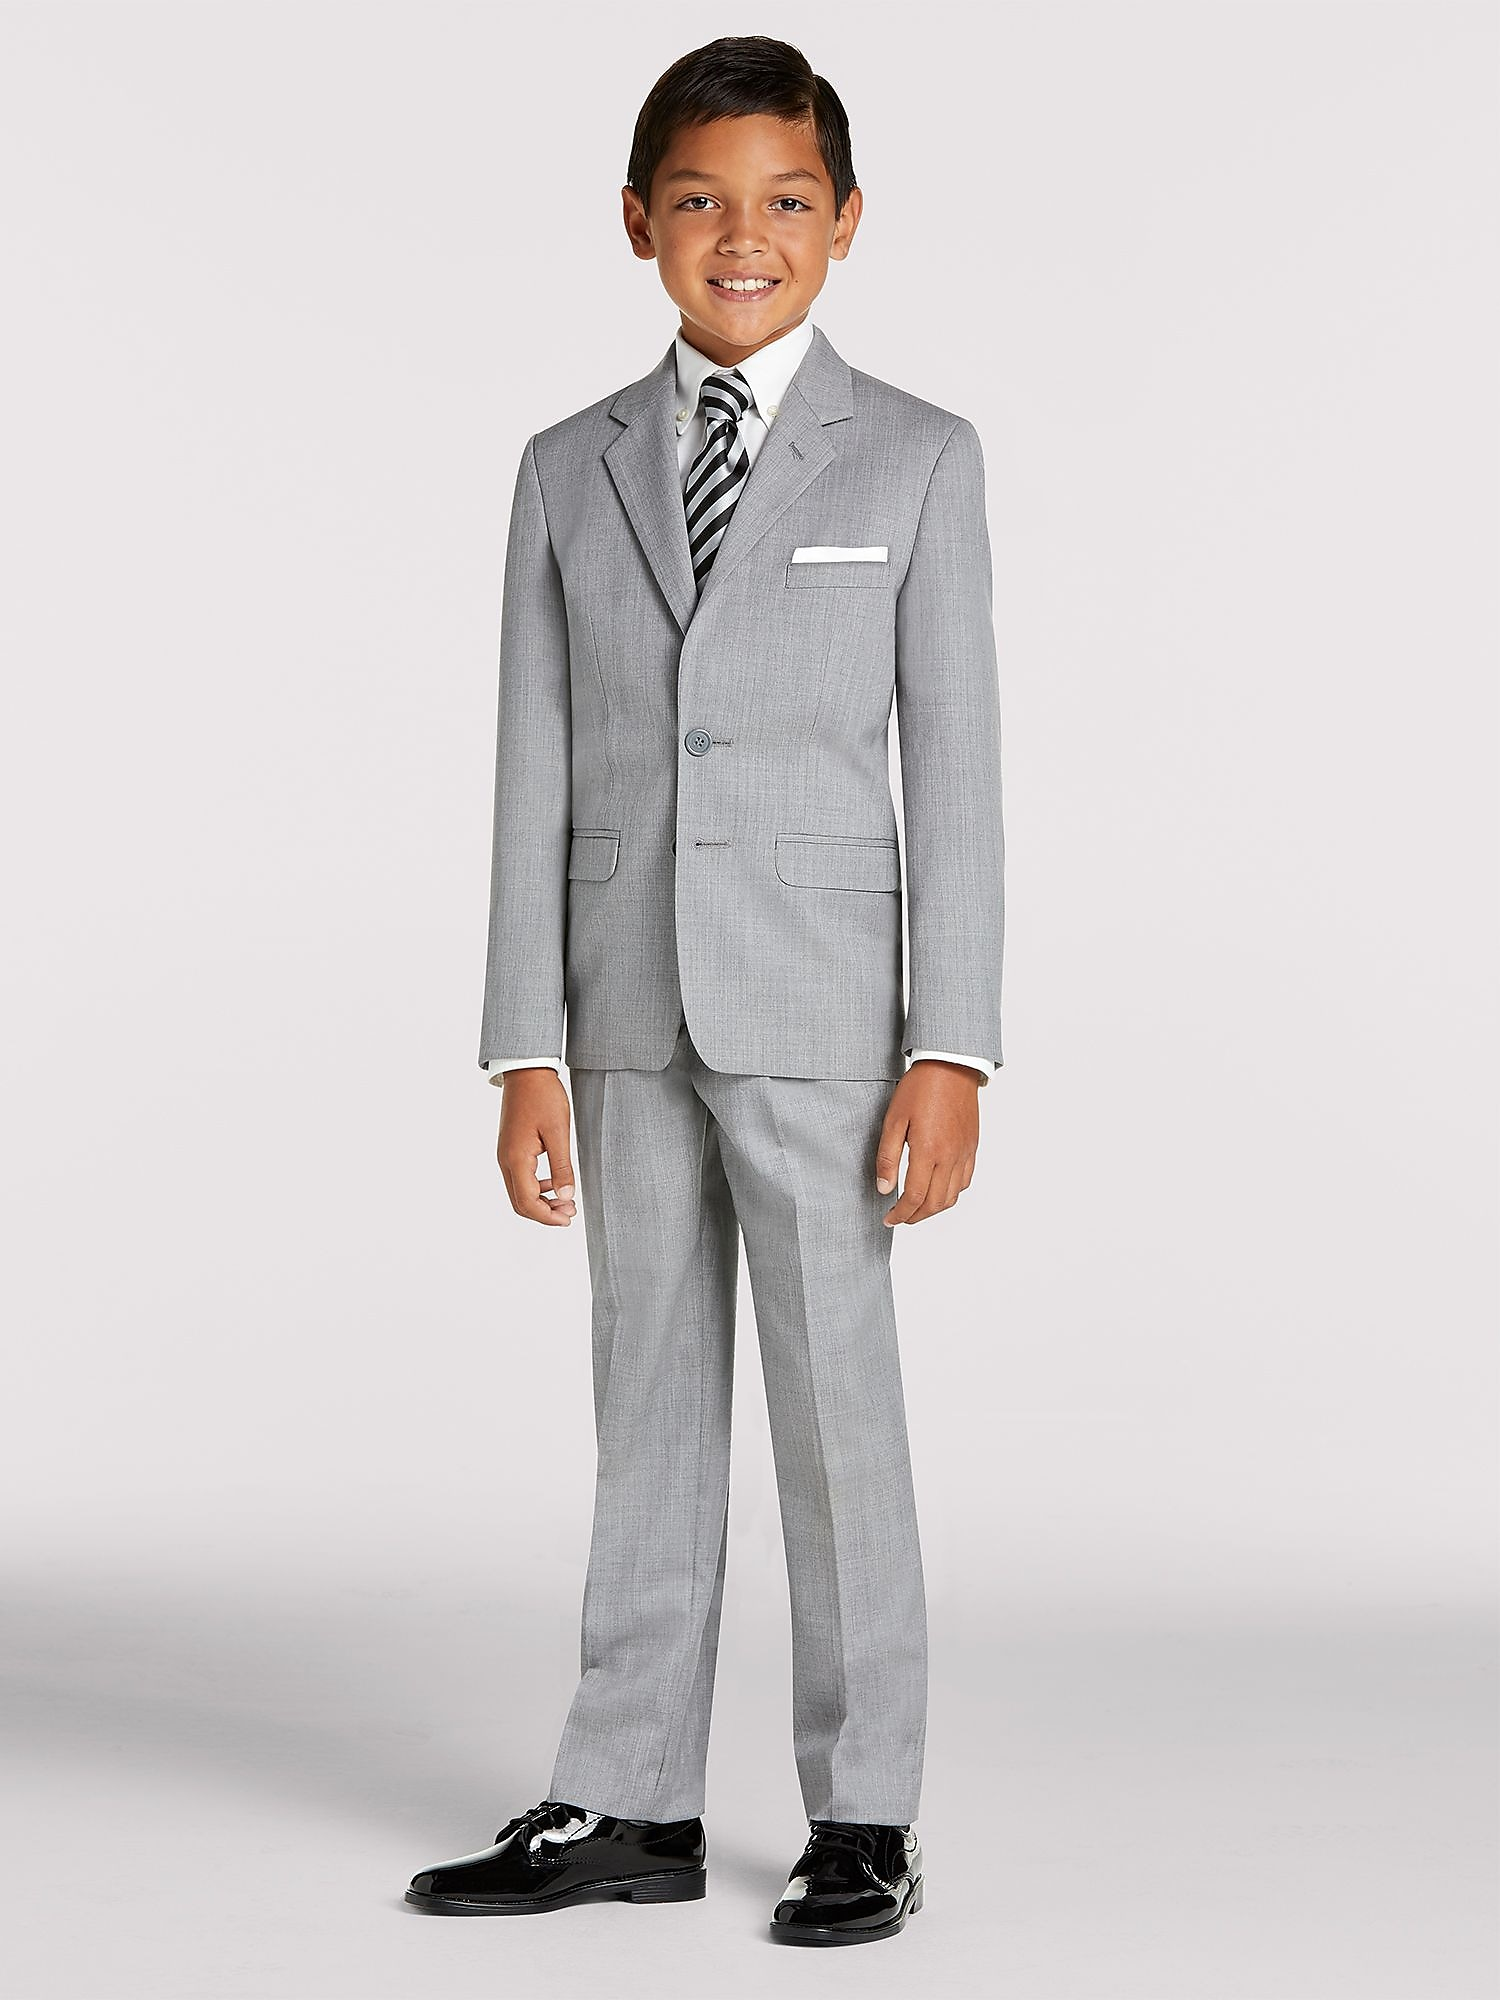 54b28b8fc Here's what's included in your package: Joseph & Feiss Boy's Gray Suit ...